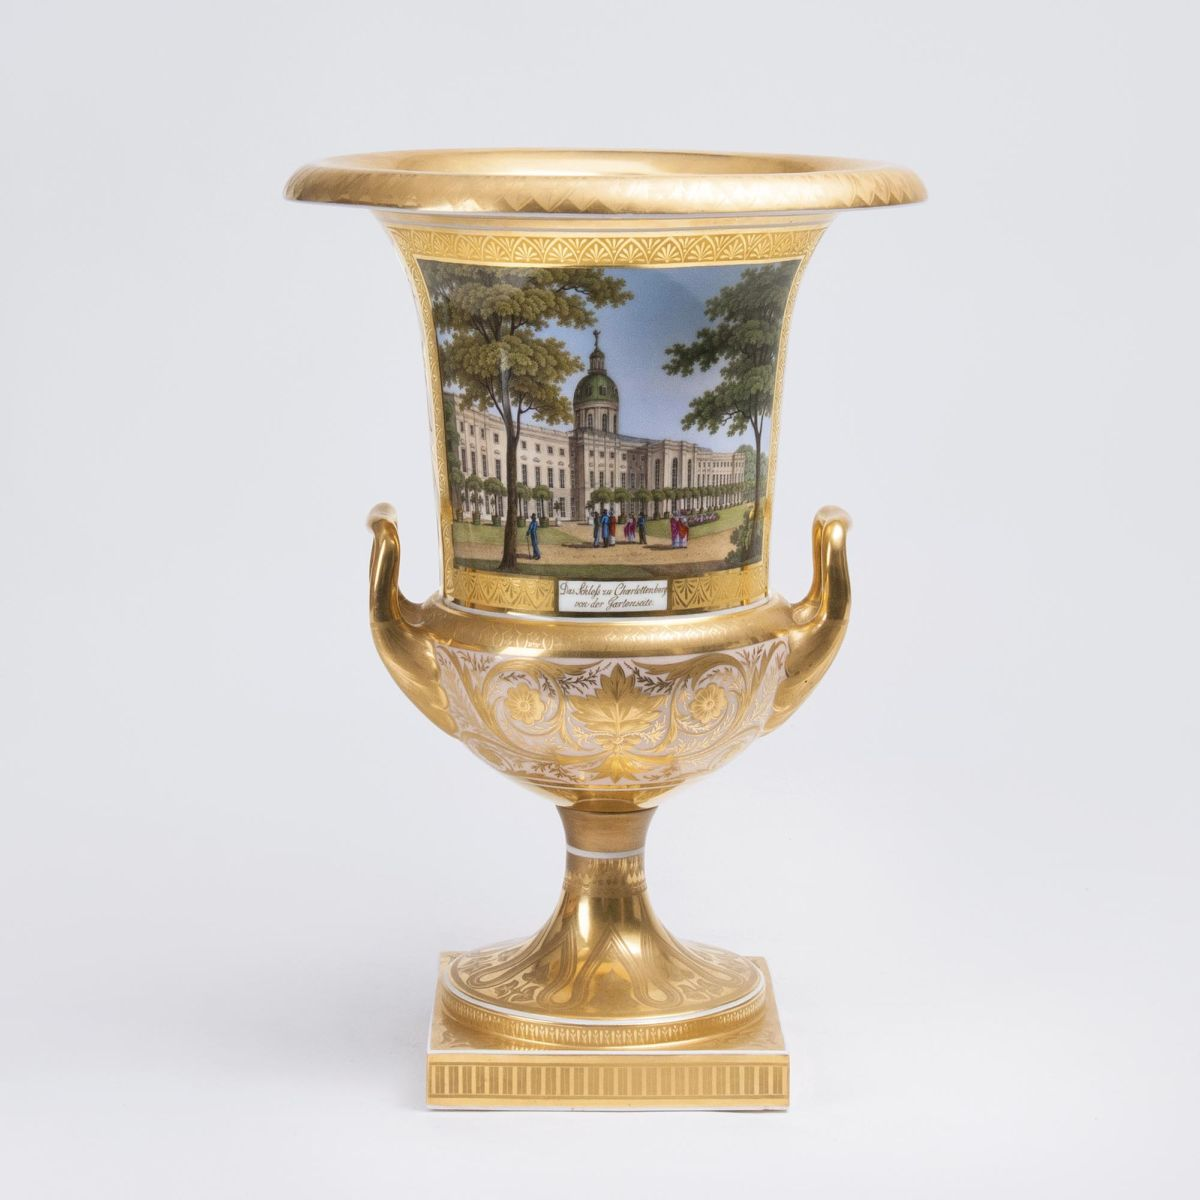 A rare Crater Vase with Views of Charlottenburg Palace and Isle of Louise in Berlin